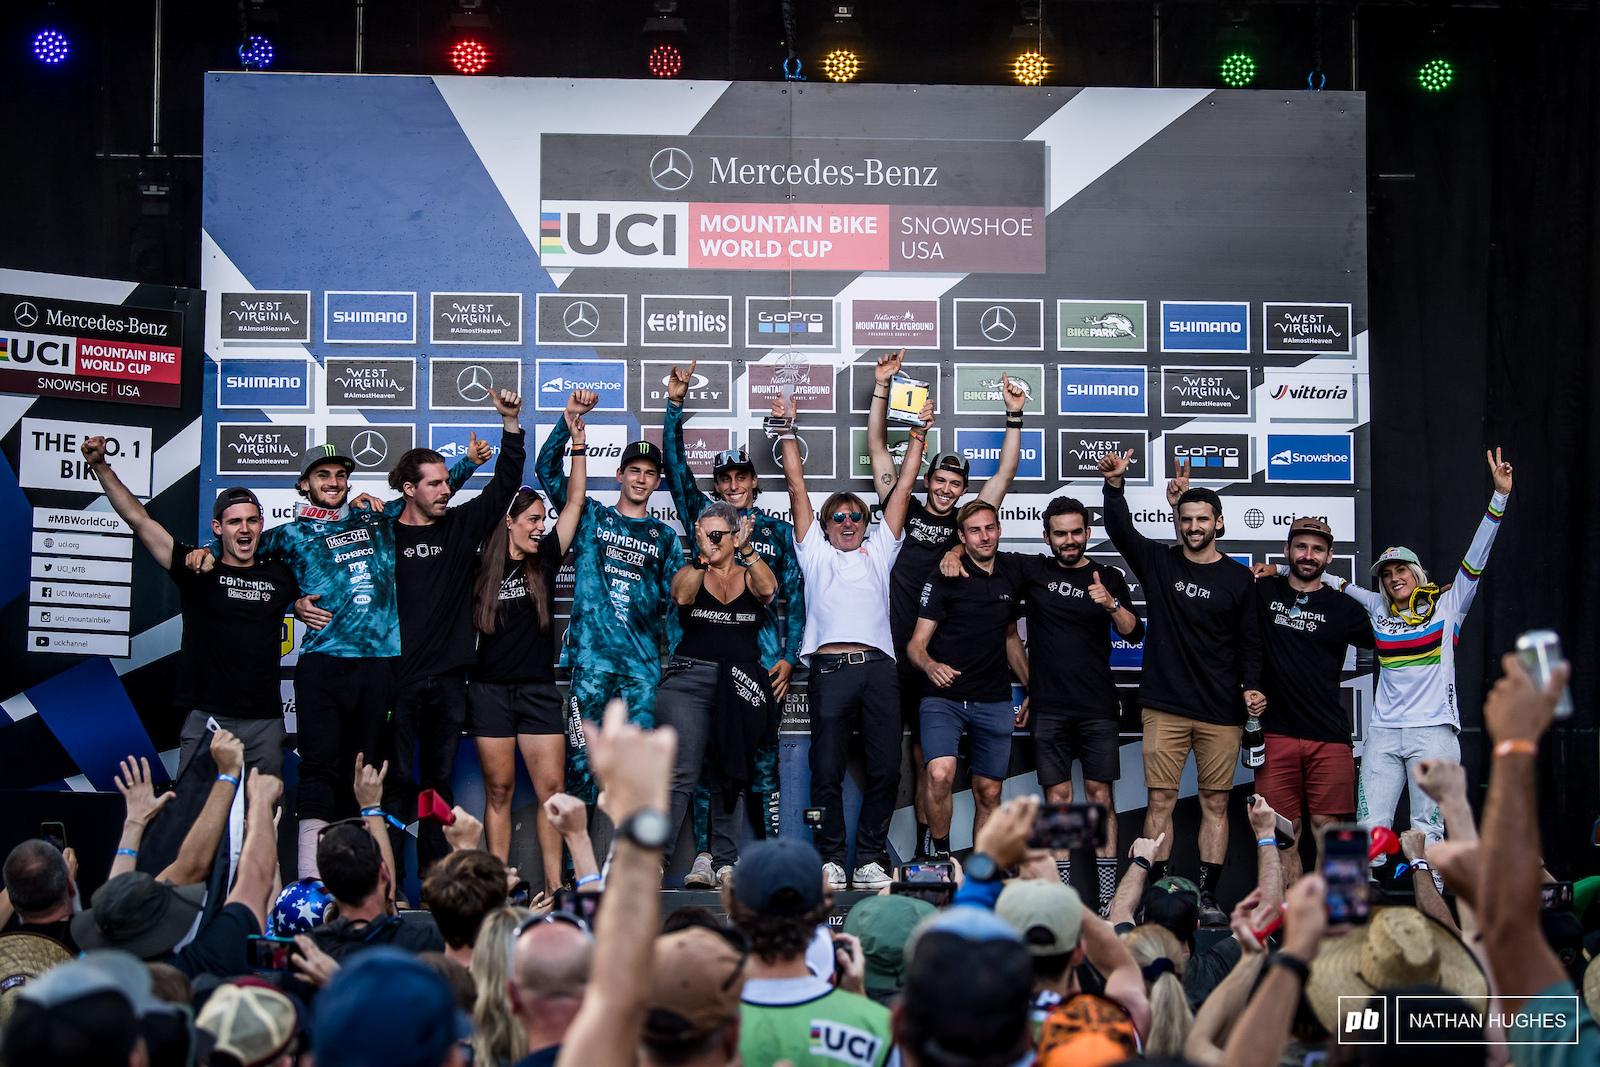 The fastest team in the World for 2021 Commencal Muc-Off.